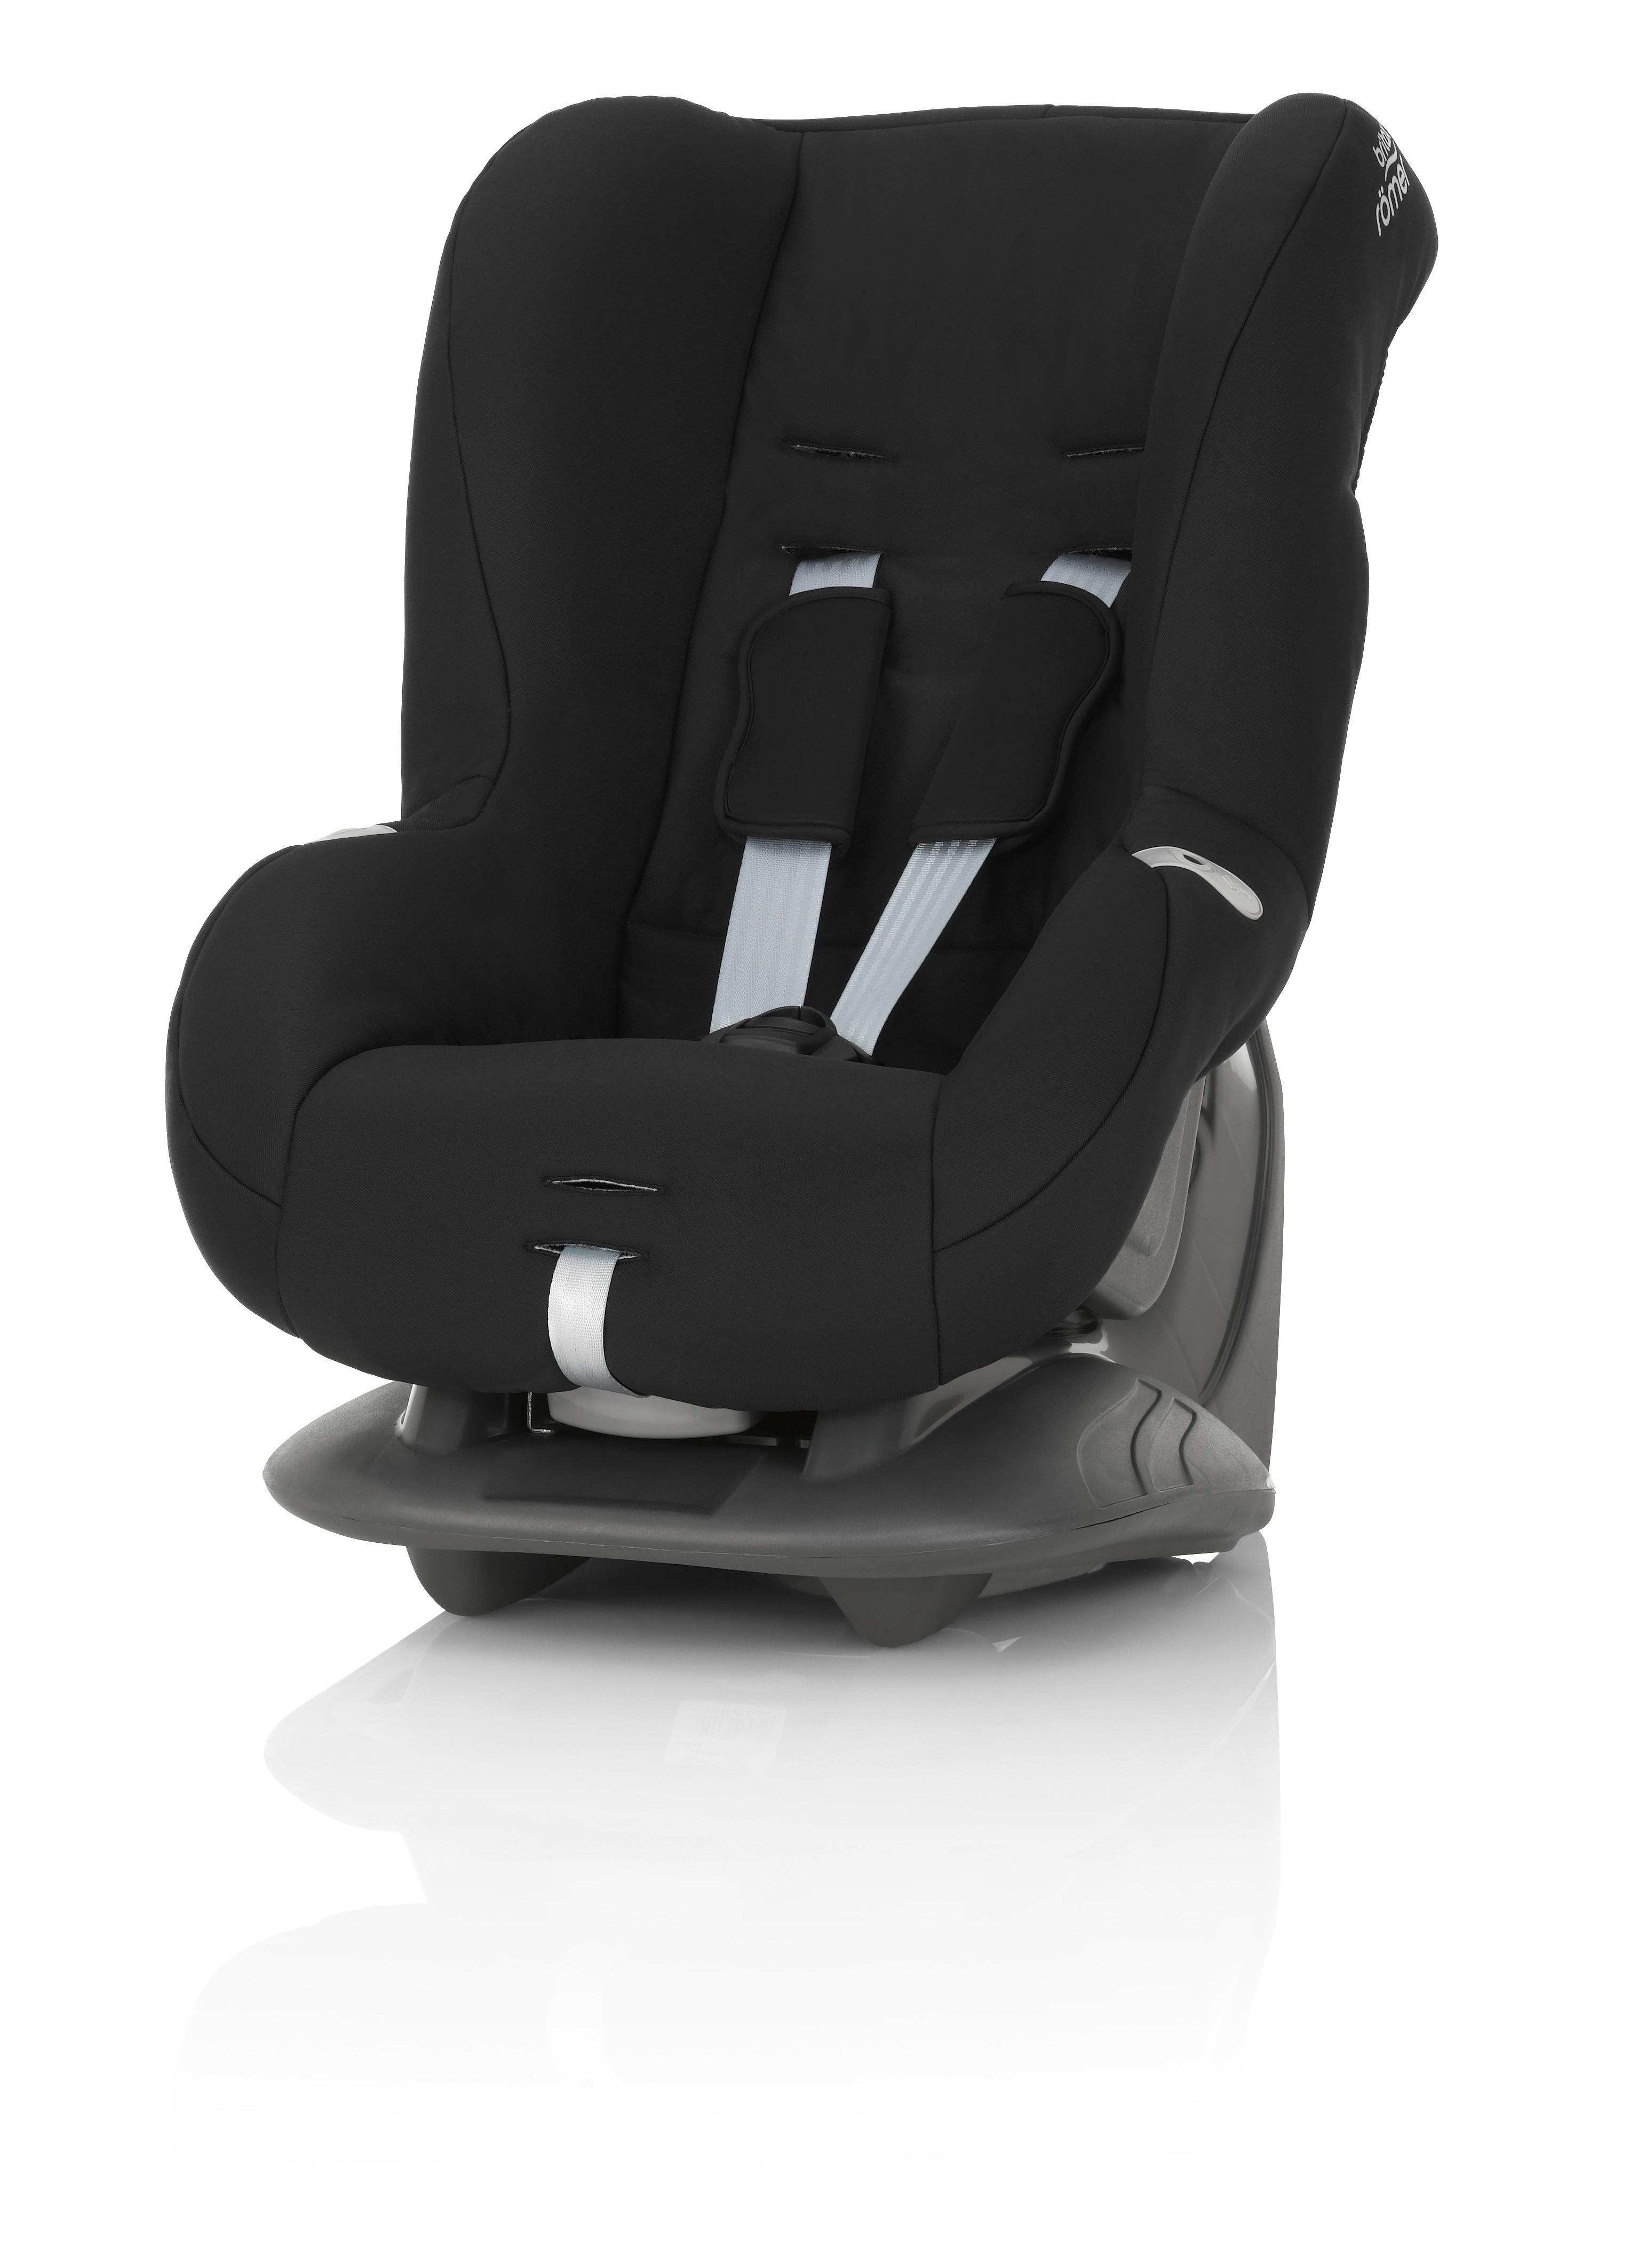 Britax Romer Eclipse Forward Facing Car Seat Group 1